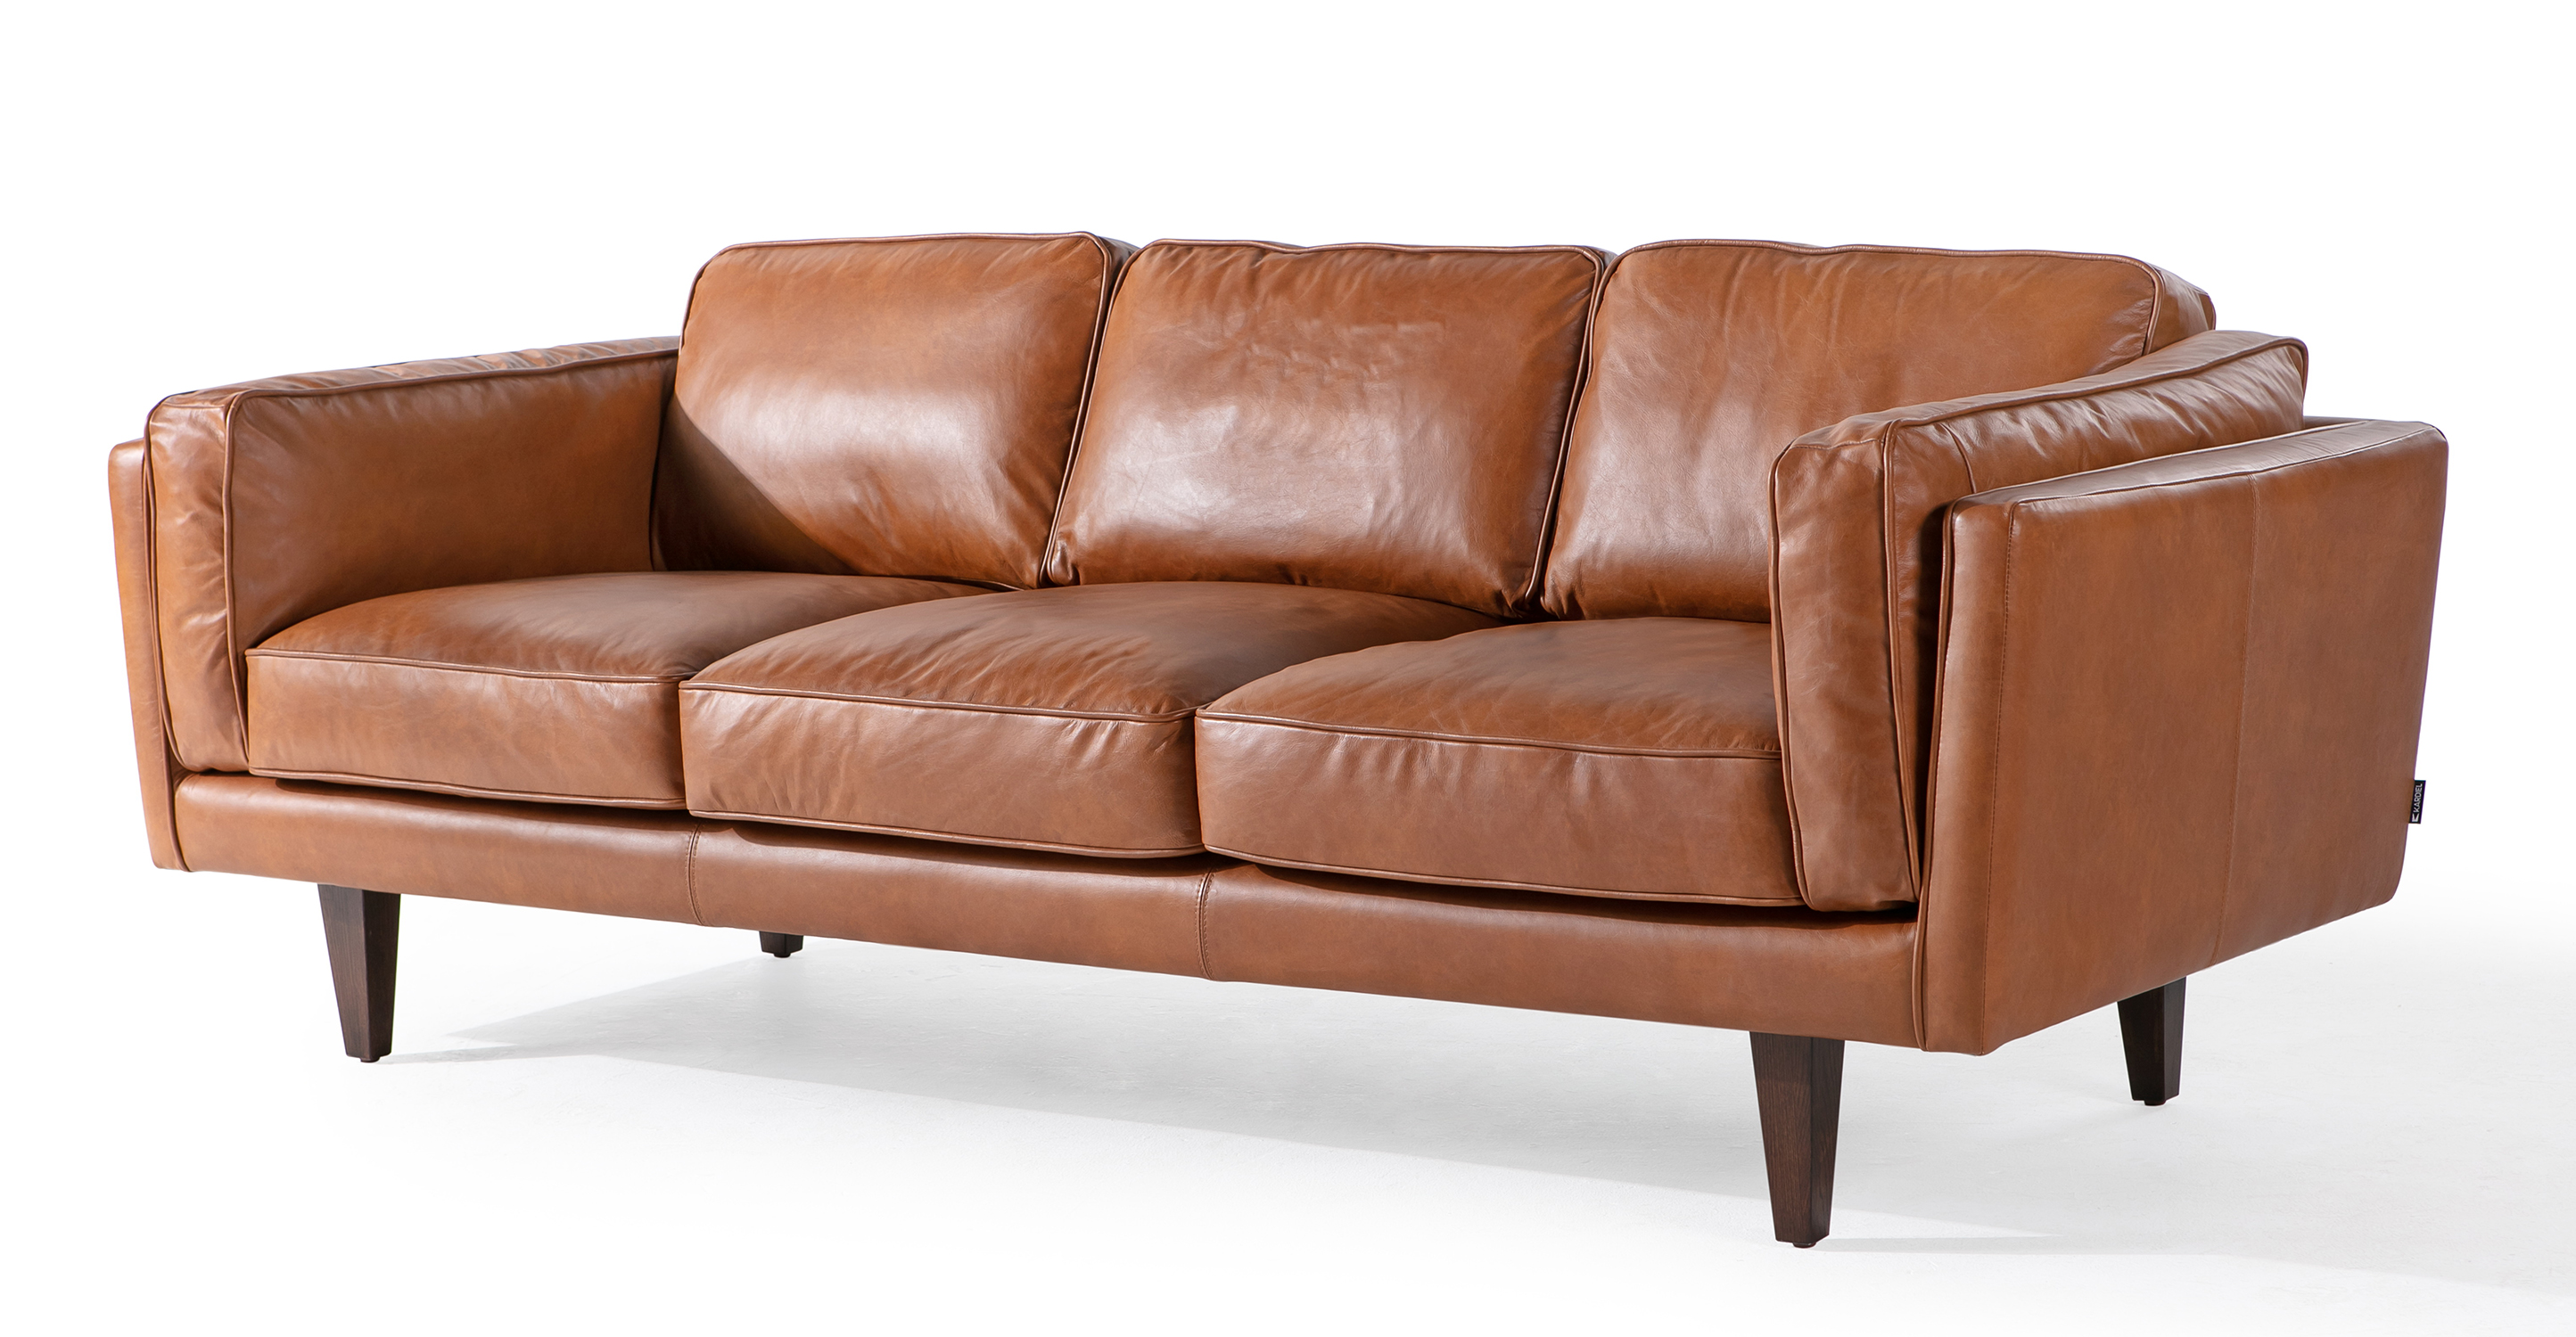 "Brooklyn 90"" Leather Sofa, Napoli Spice"